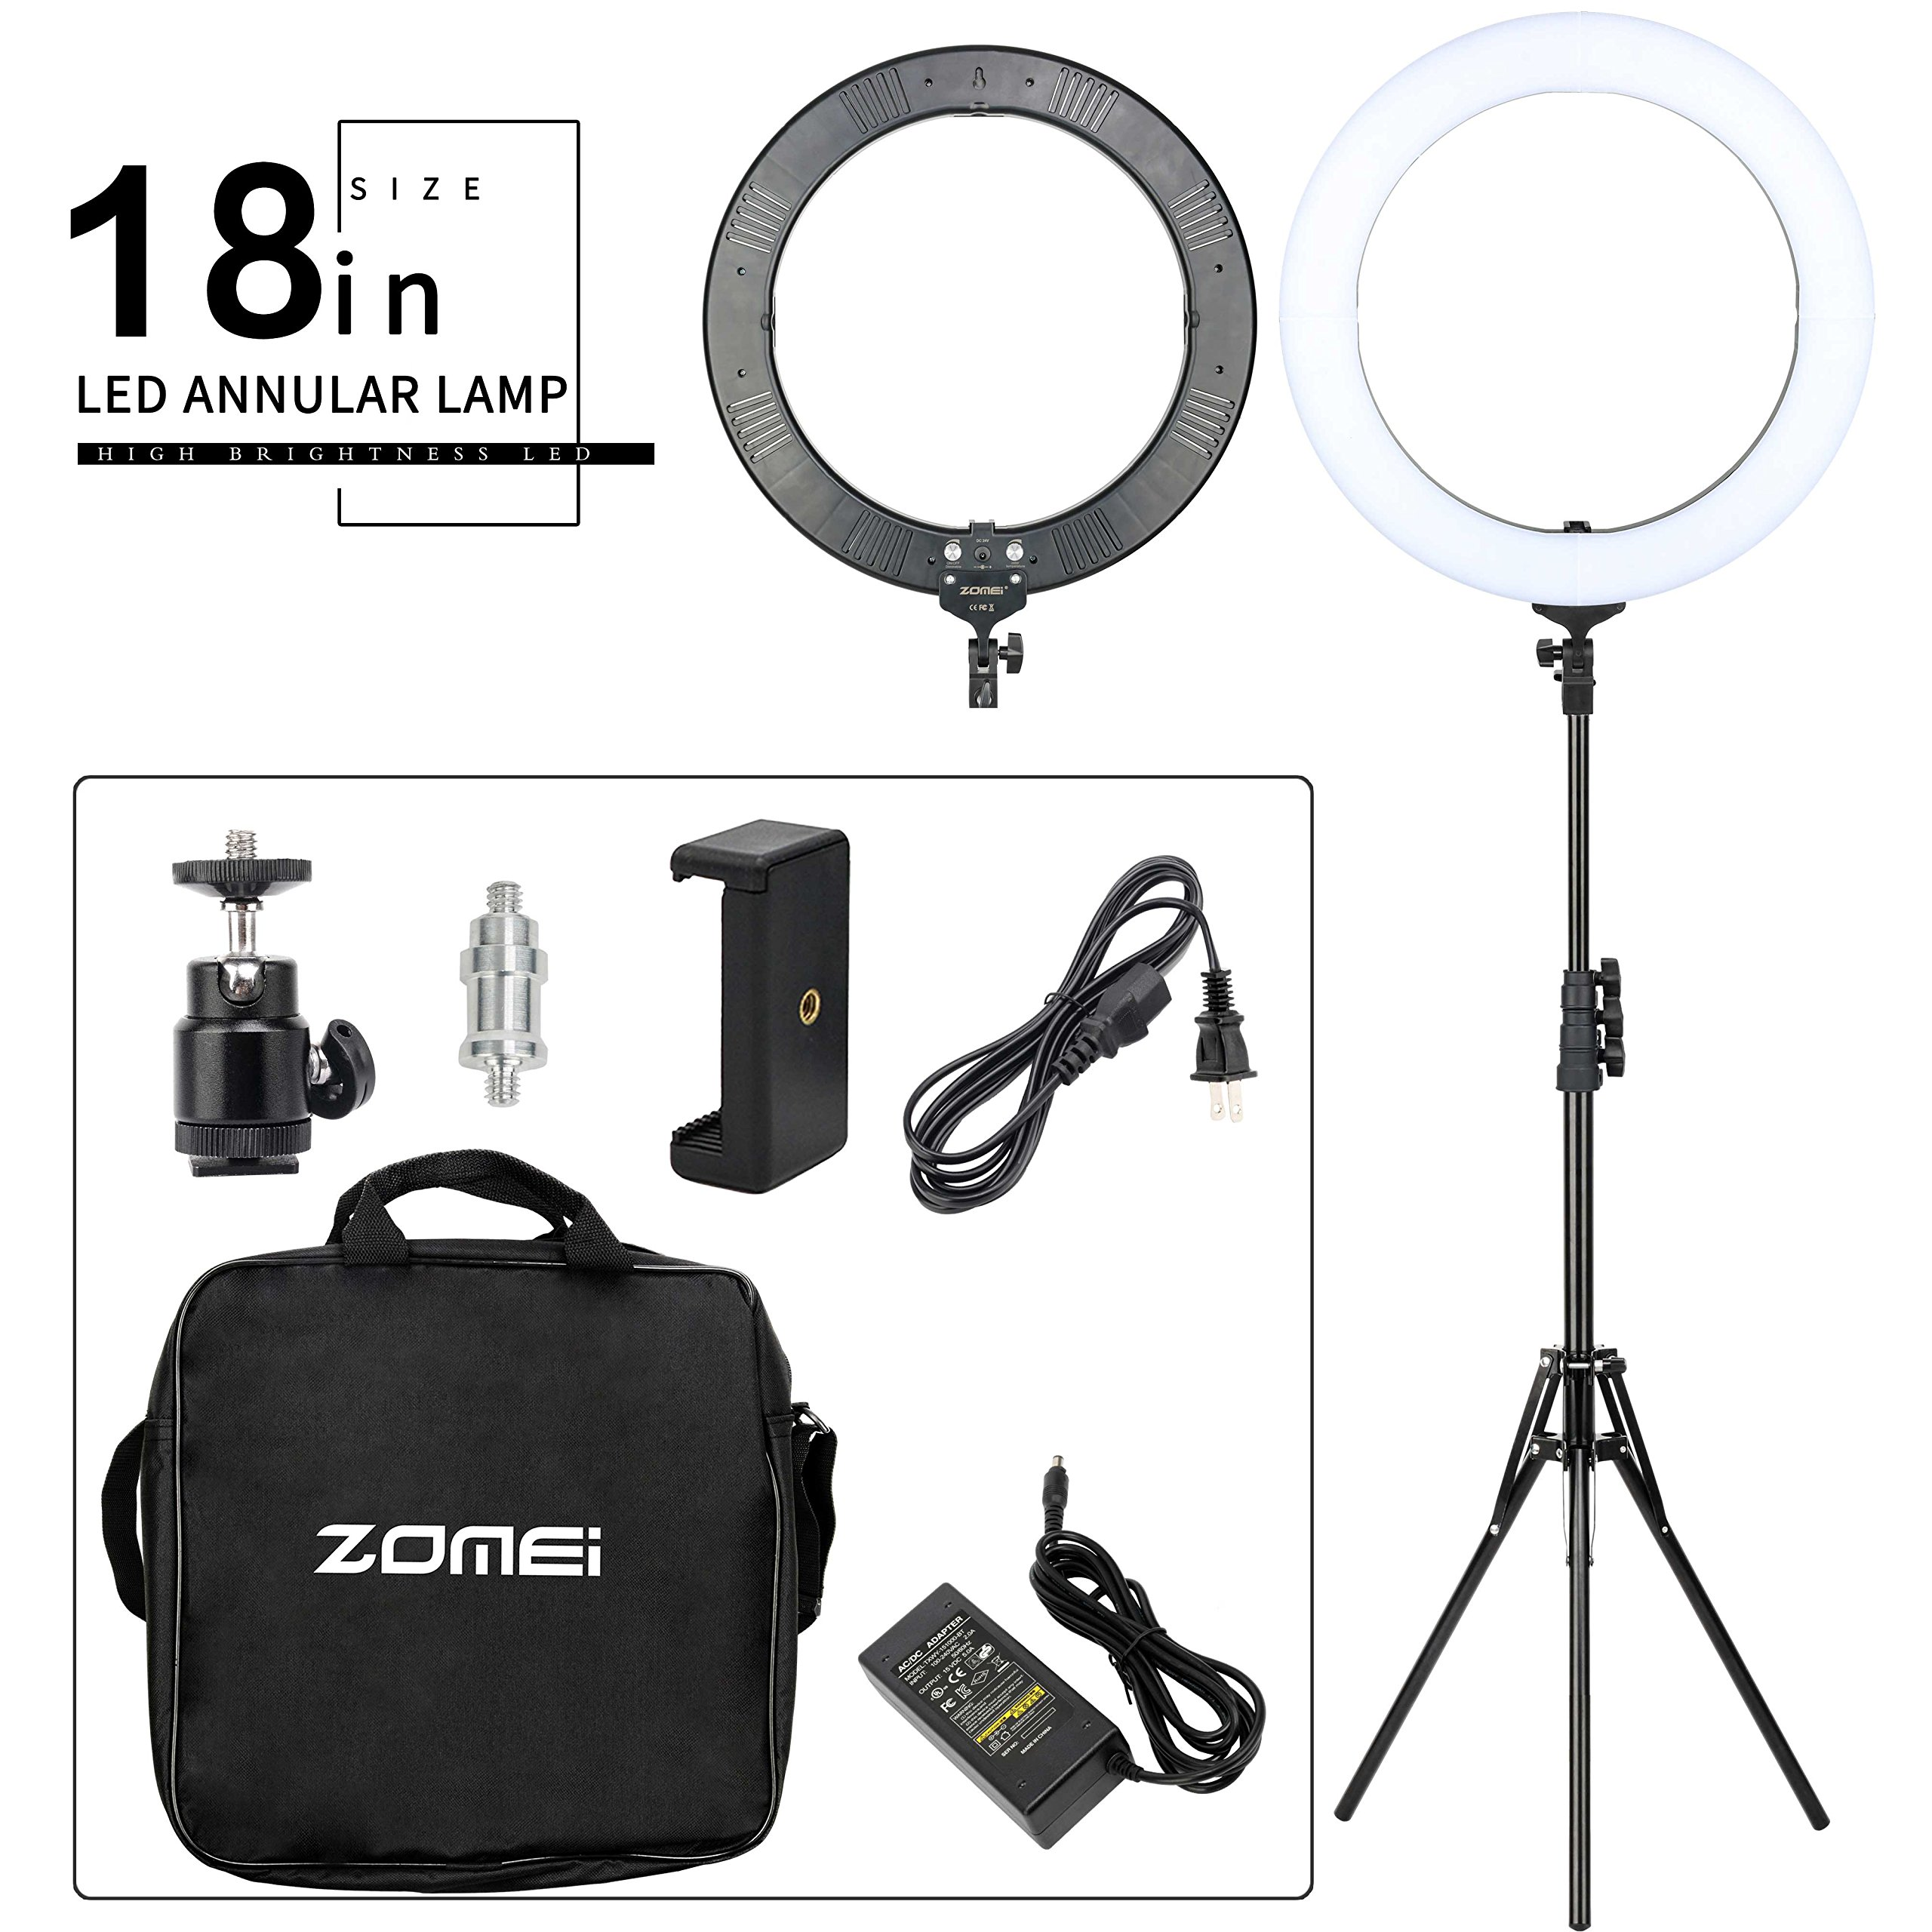 ZOMEI 18-inch Bi-Color Stepless Dimmable LED Ring Light Kitwith Stand 58W 5500K Output Hot Shoe Adapter for Outdoor Shooting Live Streaming Make Up and YouTube Video